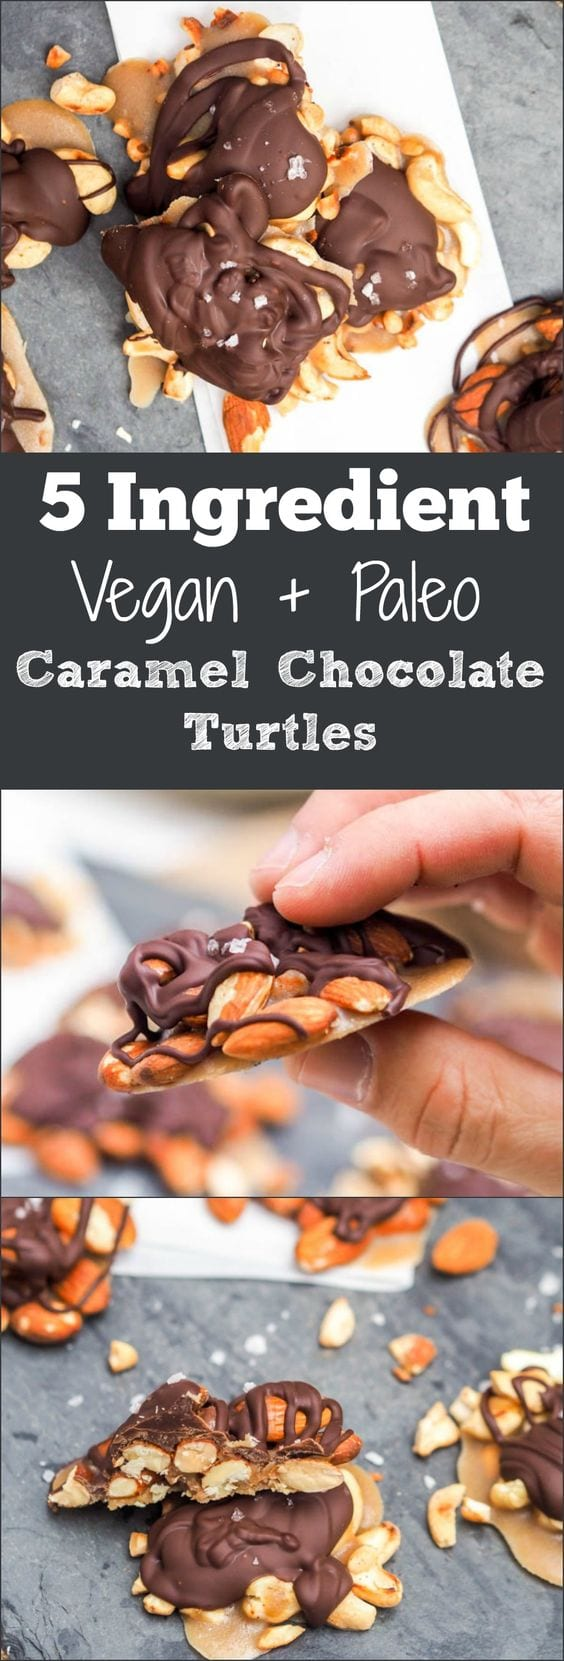 Simplified 15 minute healthier paleo + vegan caramel chocolate turtles made with only five ingredients. Gluten Free and Refined Sugar Free. Perfect for the holidays or any time you're craving a crunchy sweet salty treat!  #paleo #vegan #dessert #chocolate